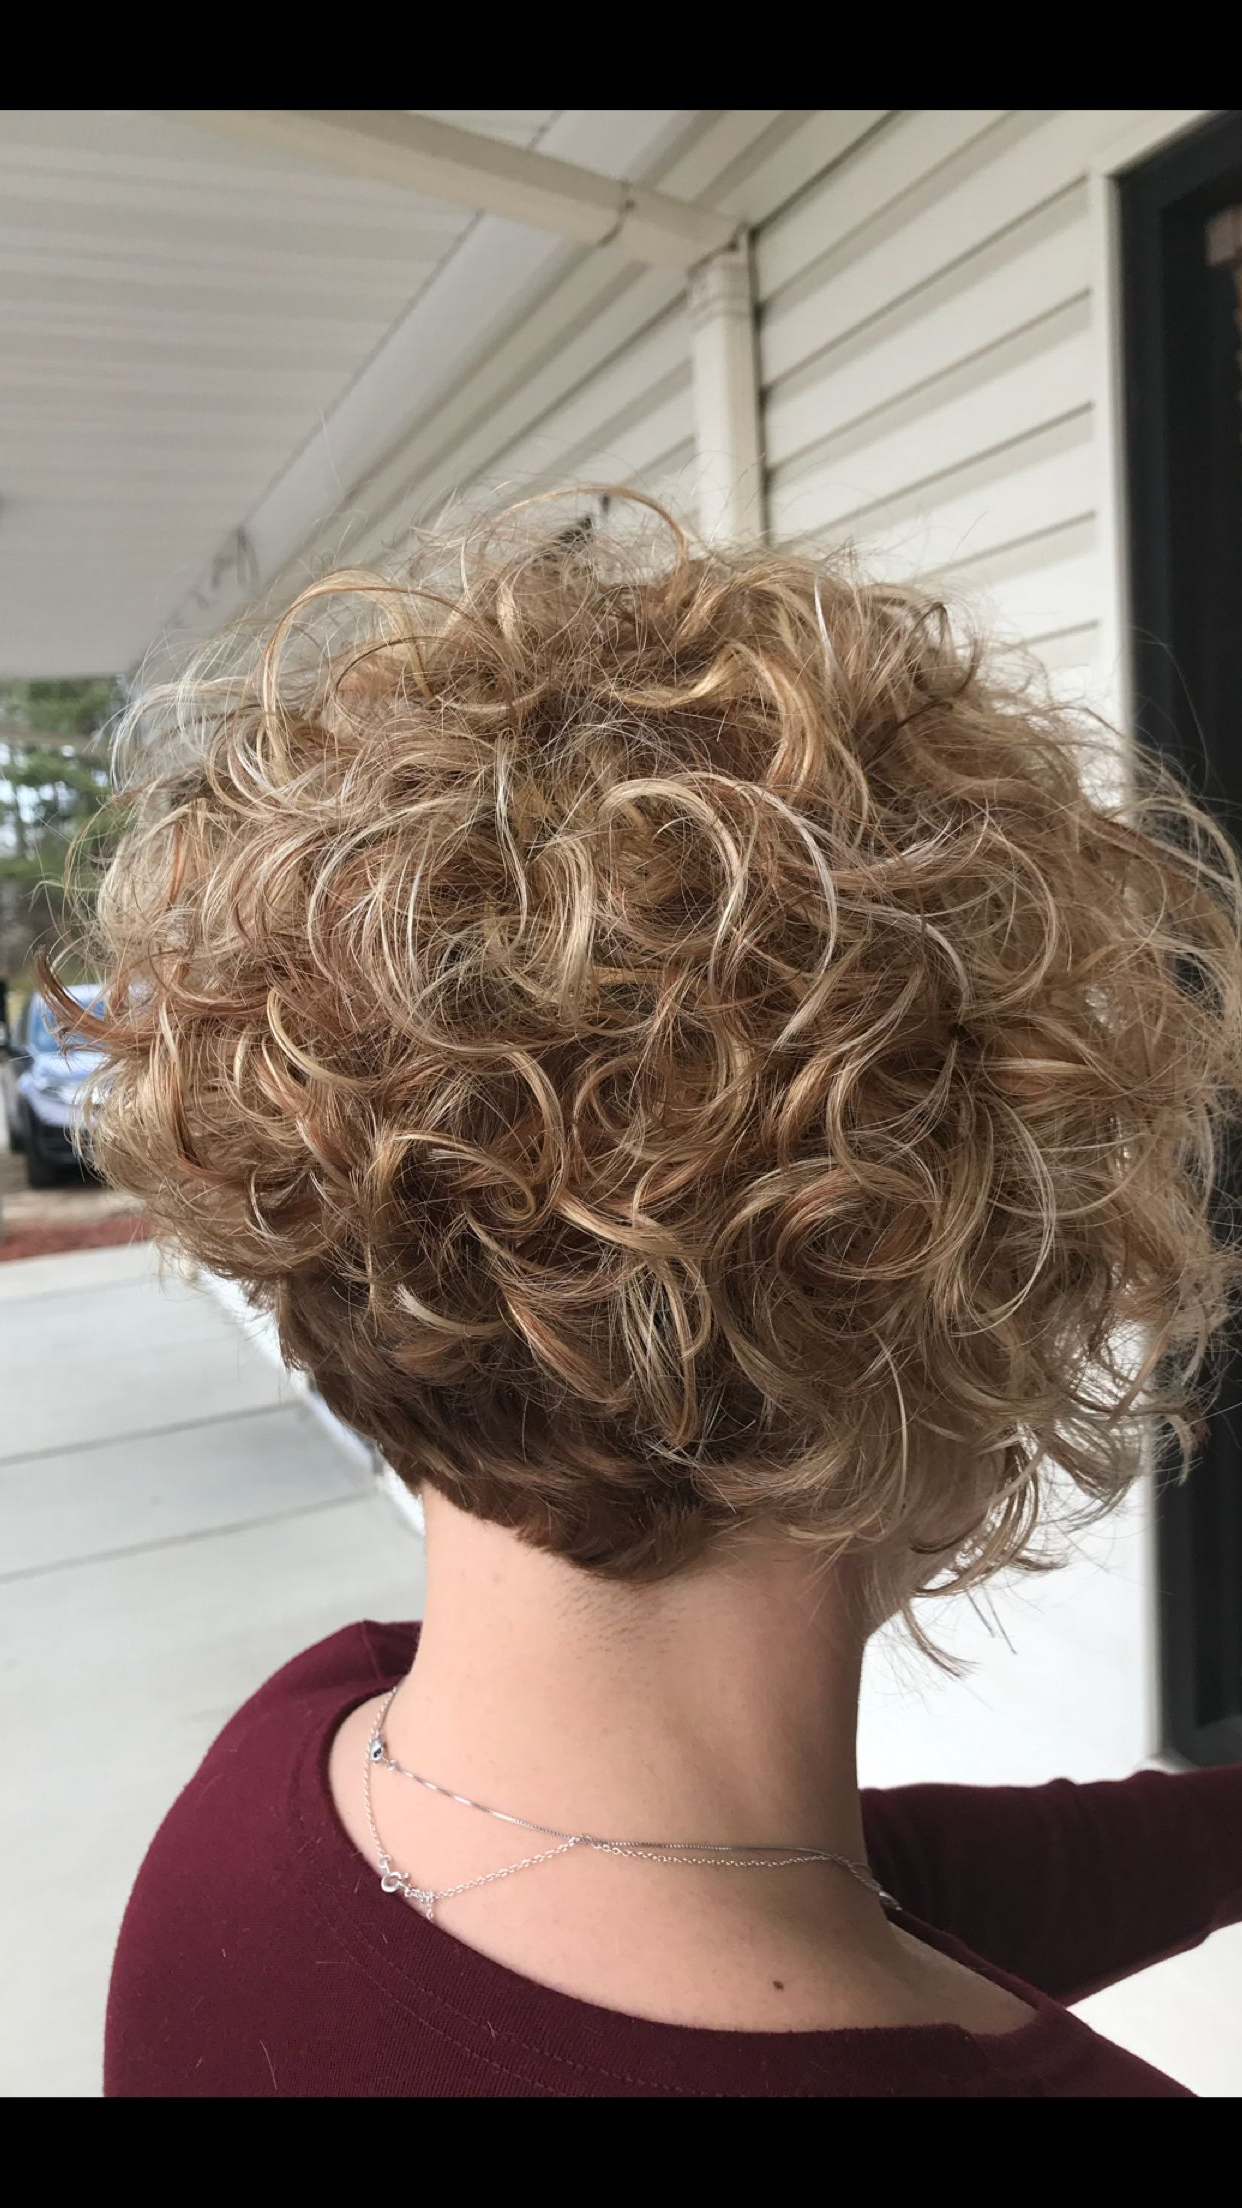 Pingladis Ondina Cubas Rapalo On Cortes De Cabello | Pinterest With Angelic Blonde Balayage Bob Hairstyles With Curls (View 11 of 25)